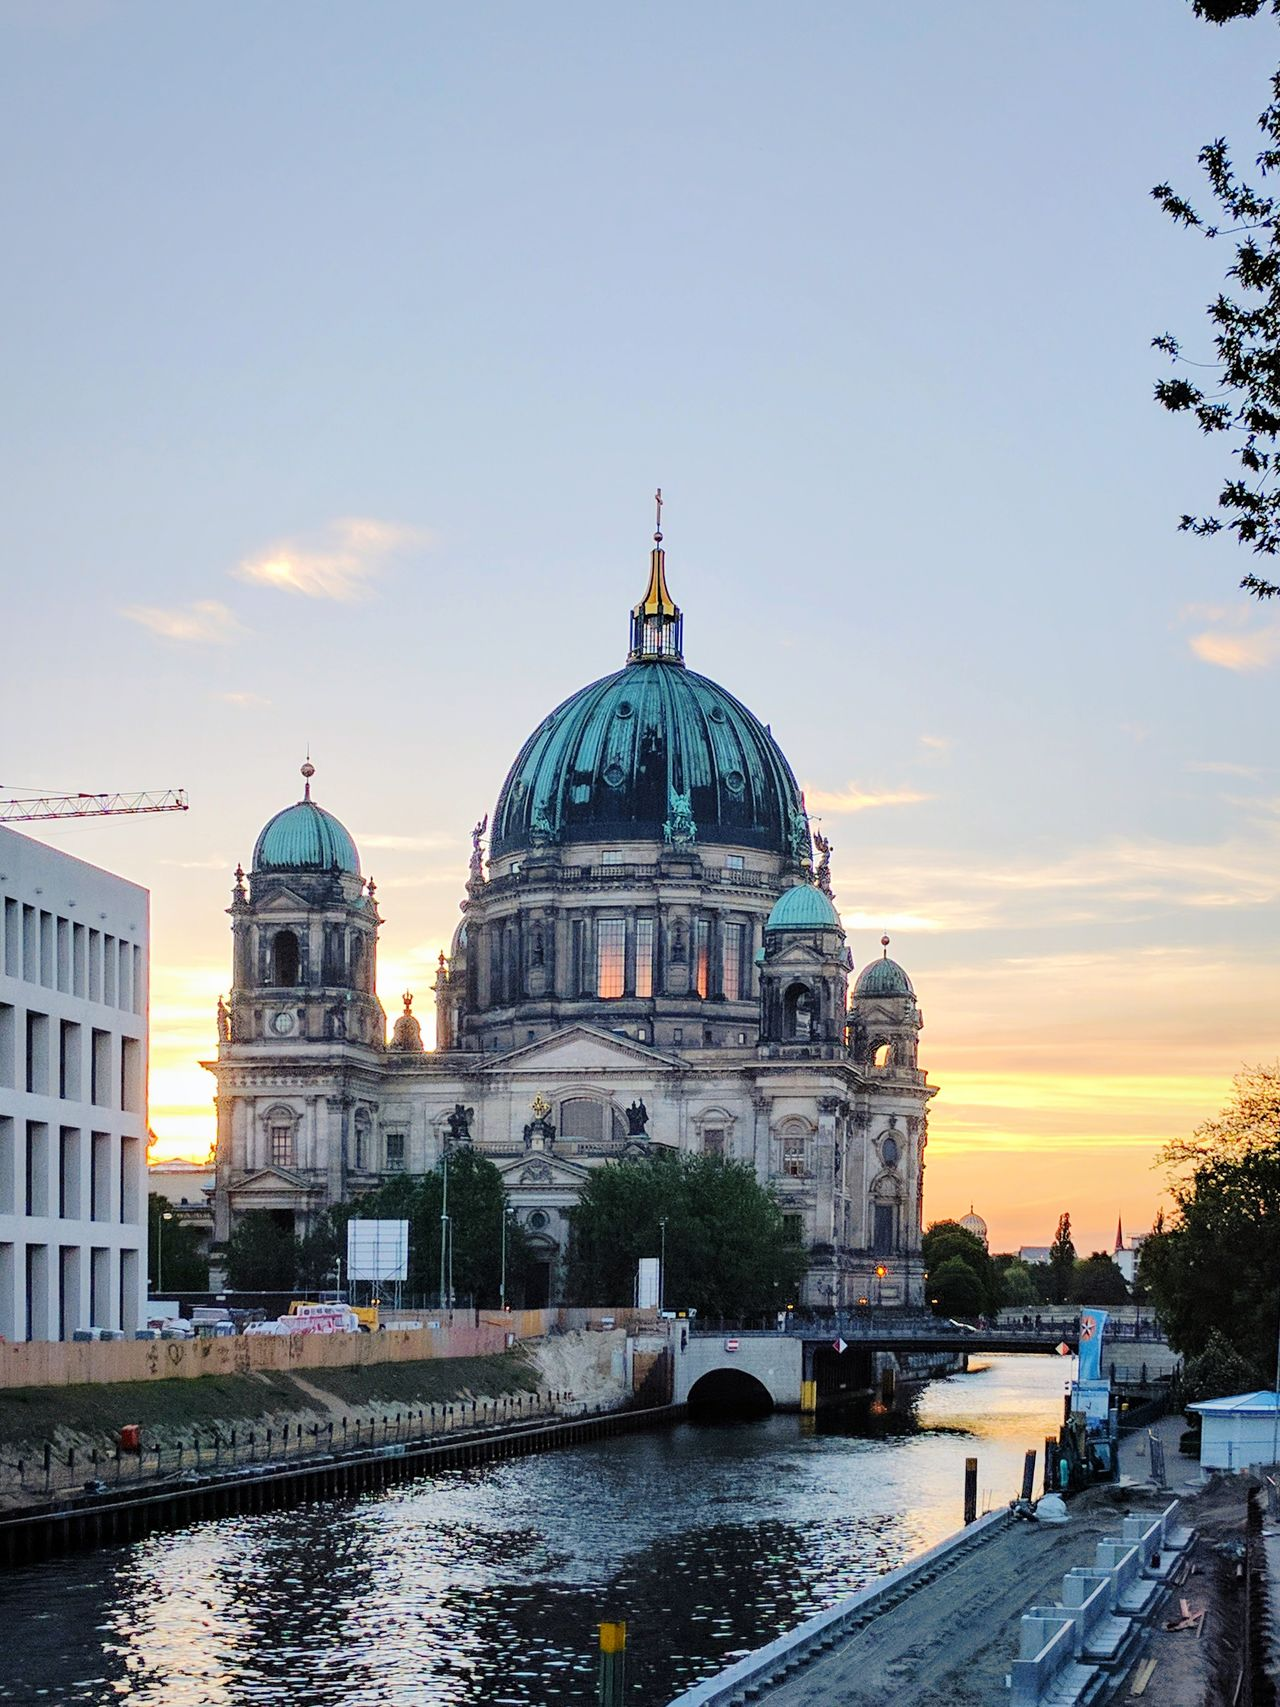 Dome Politics And Government Architecture Government Travel Destinations Water Building Exterior Sky Sunset No People Outdoors Day City Summertime Berlin Travel Destination History Neighborhood Map Cityscape Berliner Dom Spree River